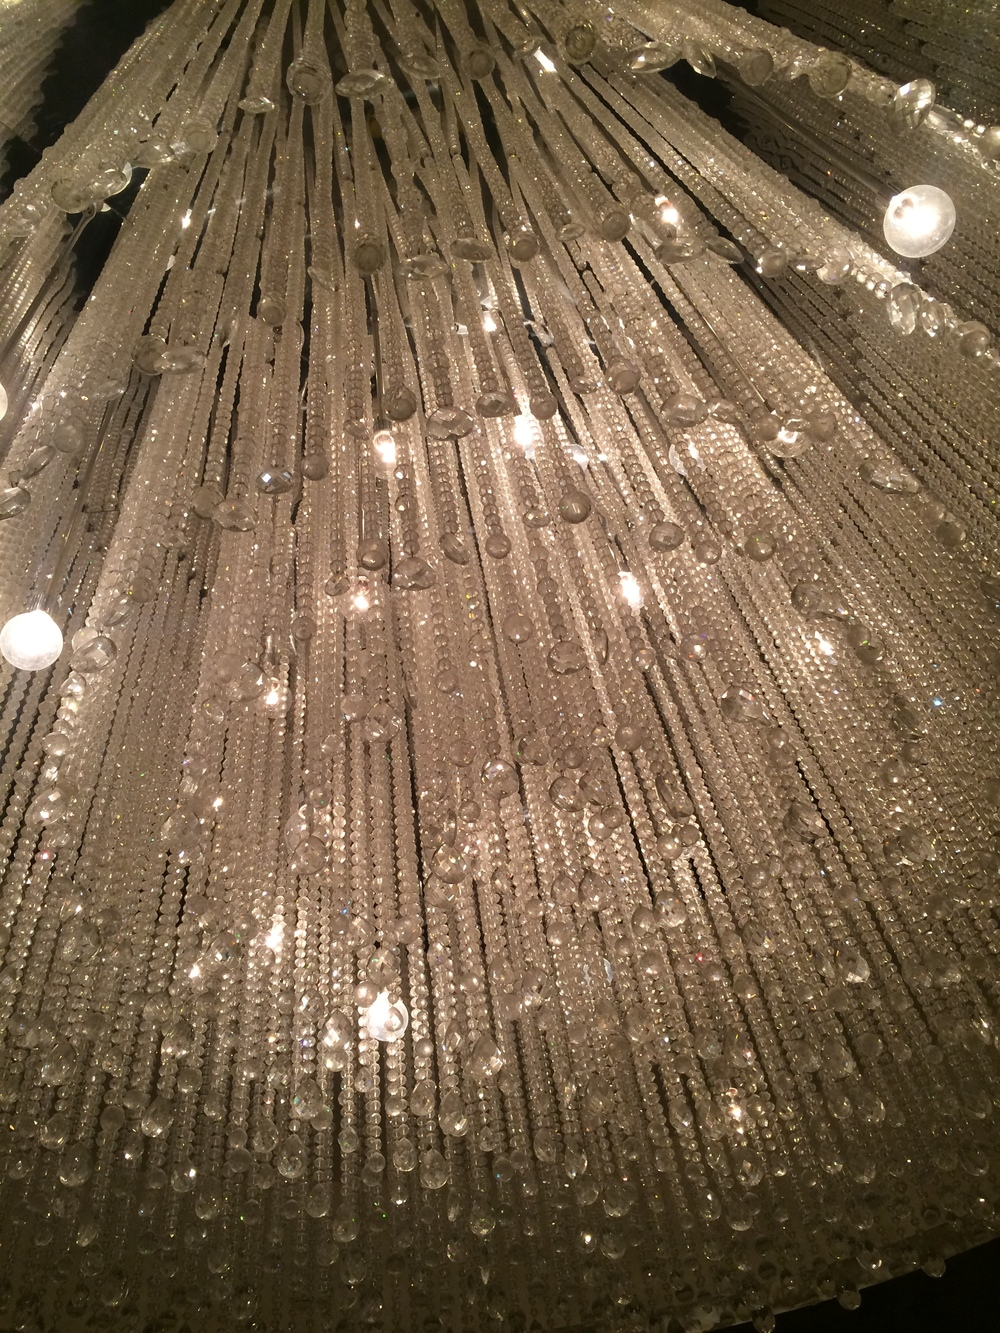 We sat under this Gorgeous Chandelier